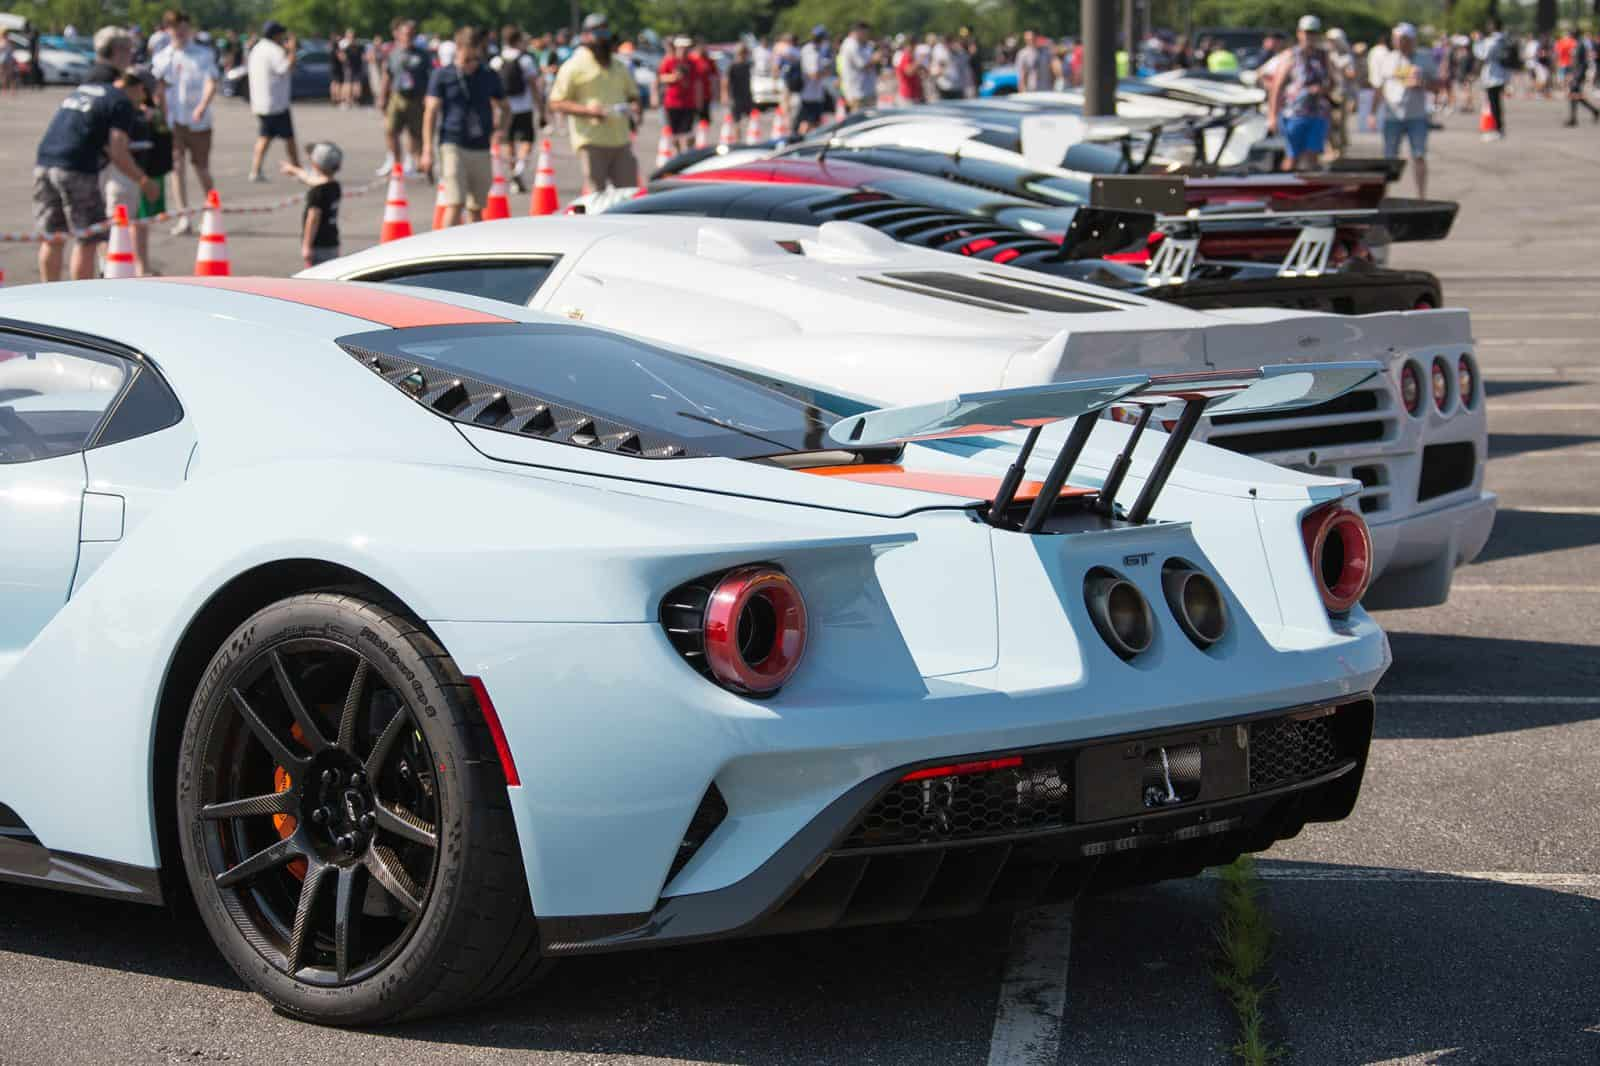 Ford GT and other Supercars